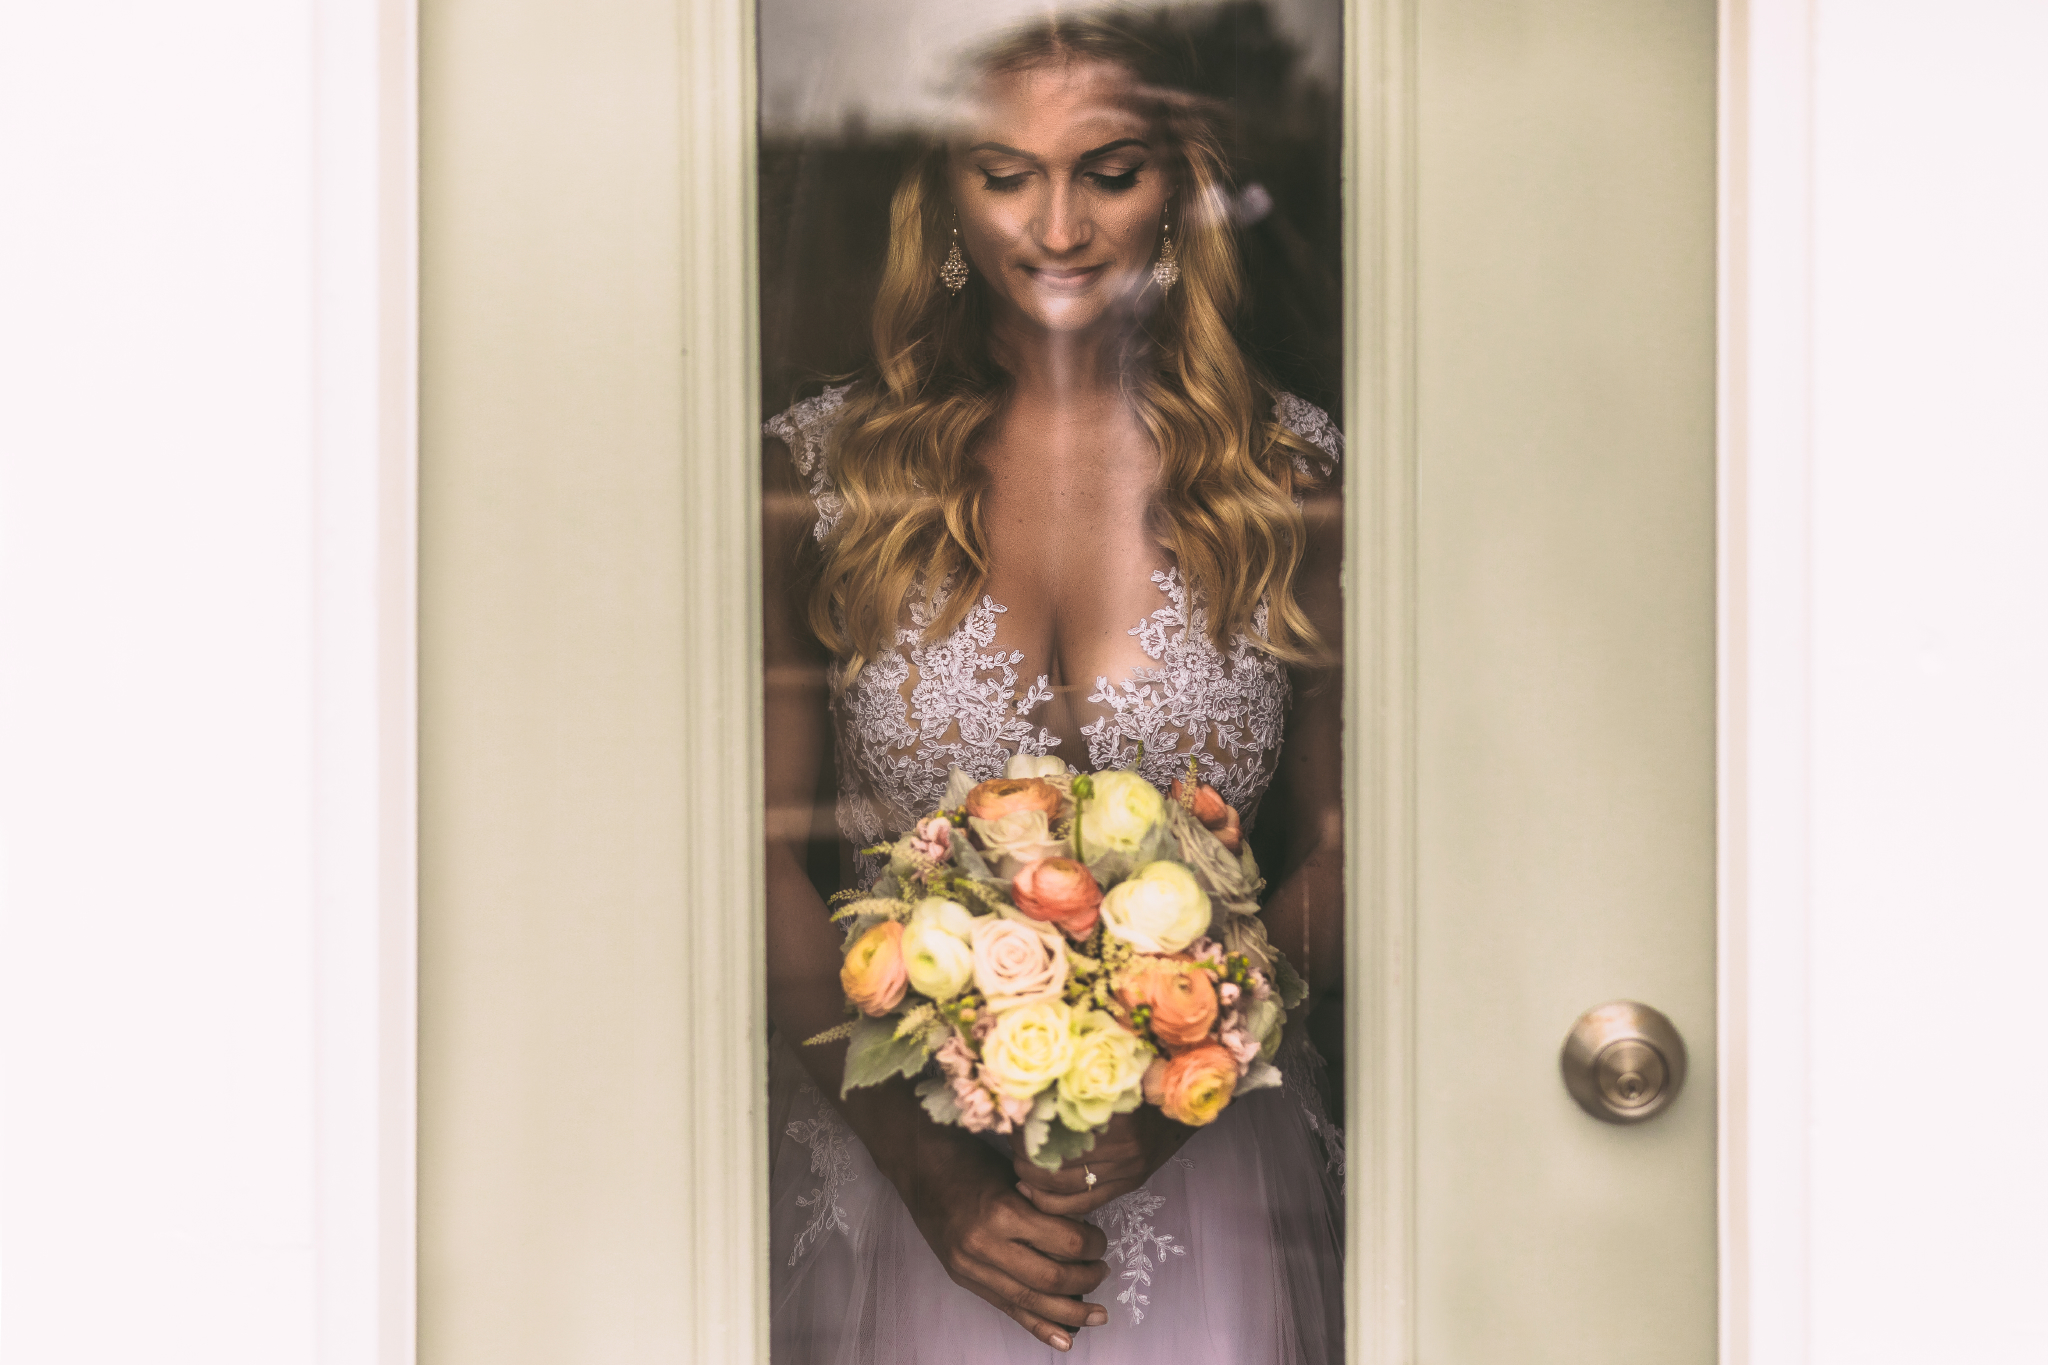 san diego wedding   photographer | woman in white dress holding bouquet of flowers looking   through glass window of door